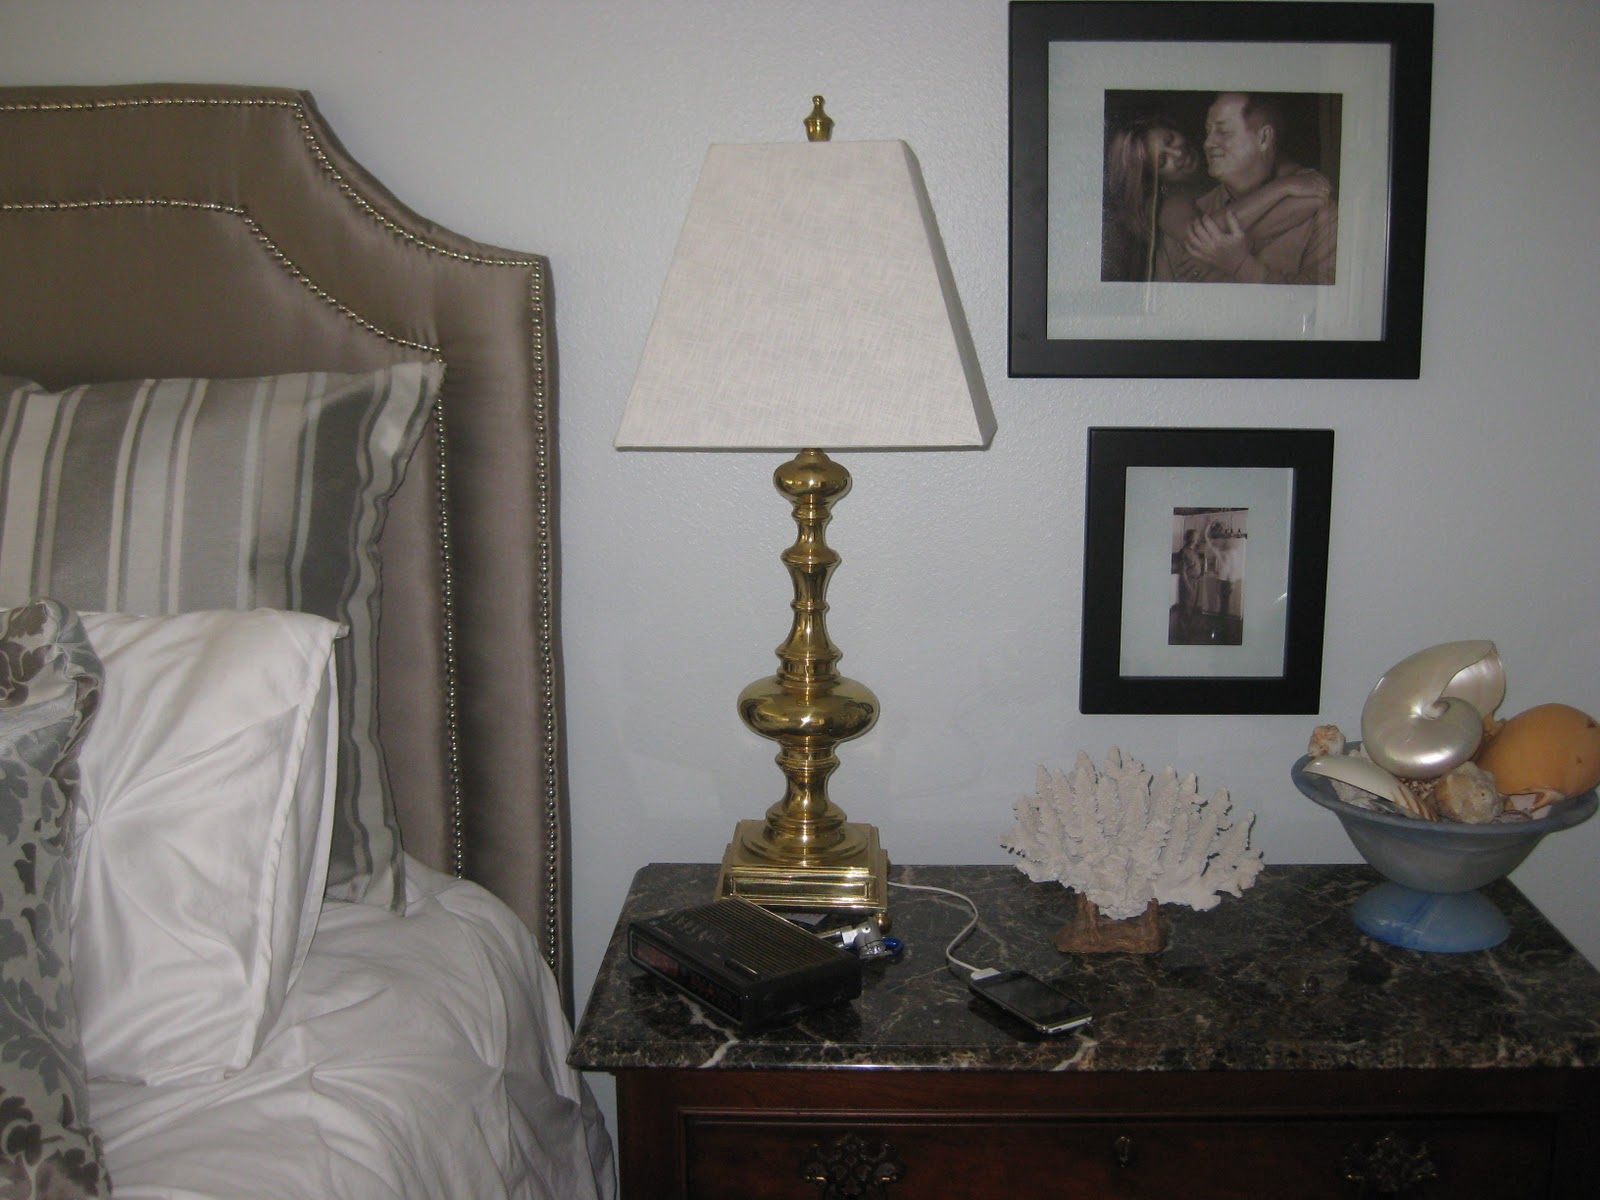 Future Targets Include This Set Of Solid Brass Bedroom Lamps. Theyu0027re Very  Heavy, Not Builderu0027s Brass, So It Makes Mr. Lane A Little Nervous That Iu0027m  Going ...